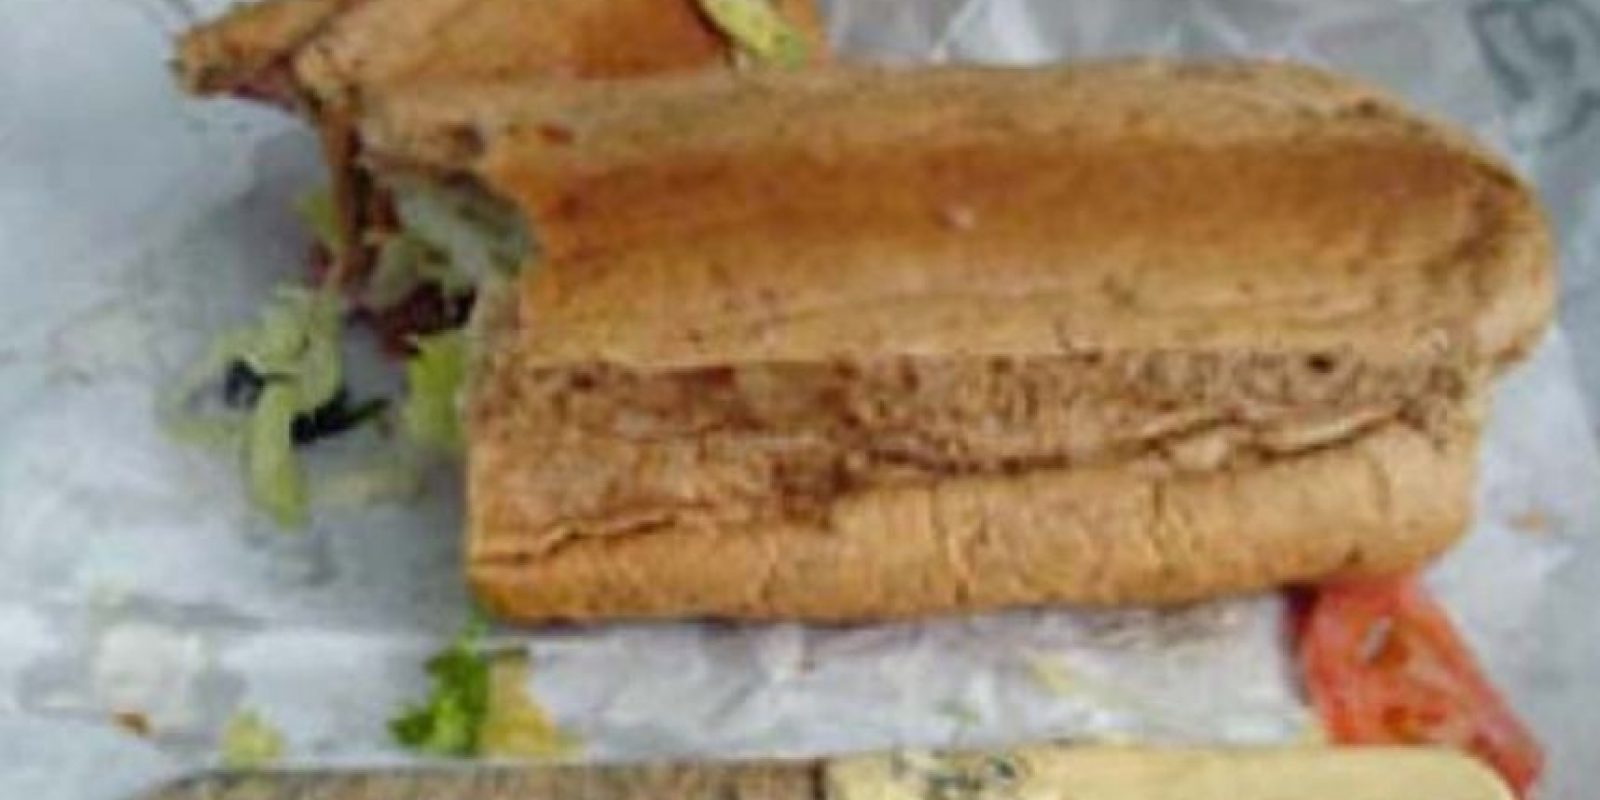 ¡Cuchillo! en sandwich Foto: vía Epic Fail